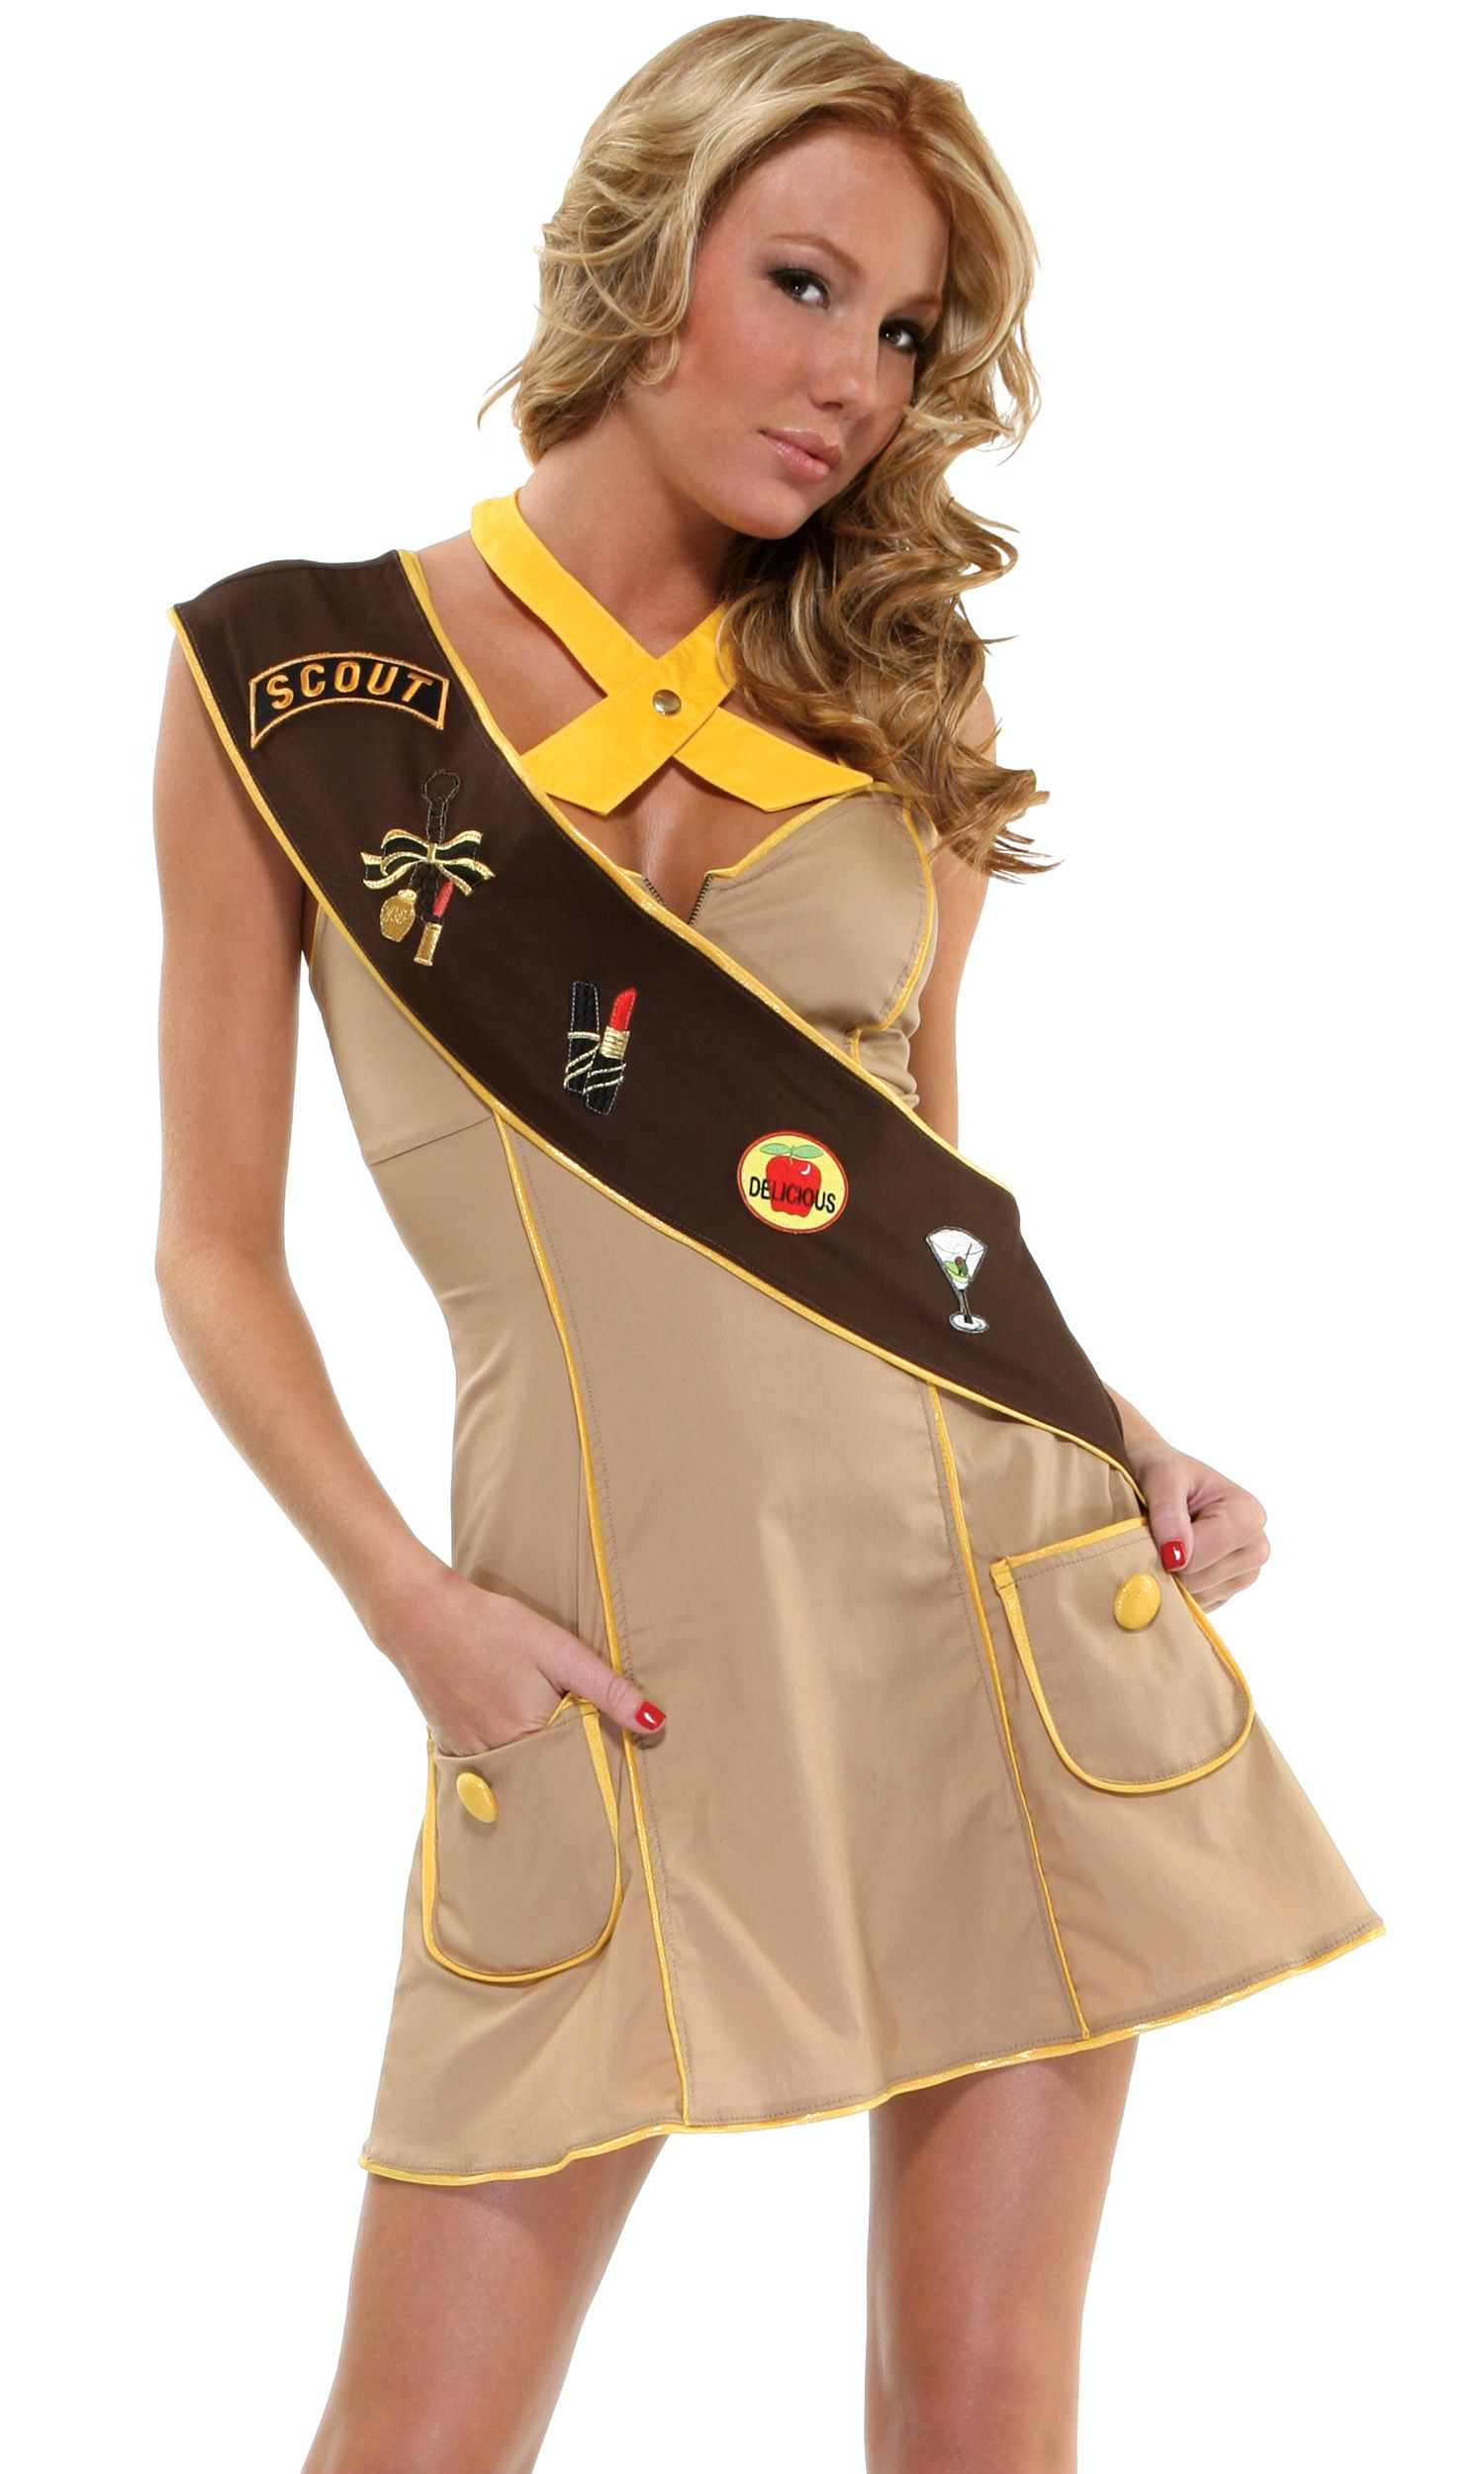 Disiao Sexy Scout Role Play Costume Set Halloween Suits Cosplay For Teen Girl Woman